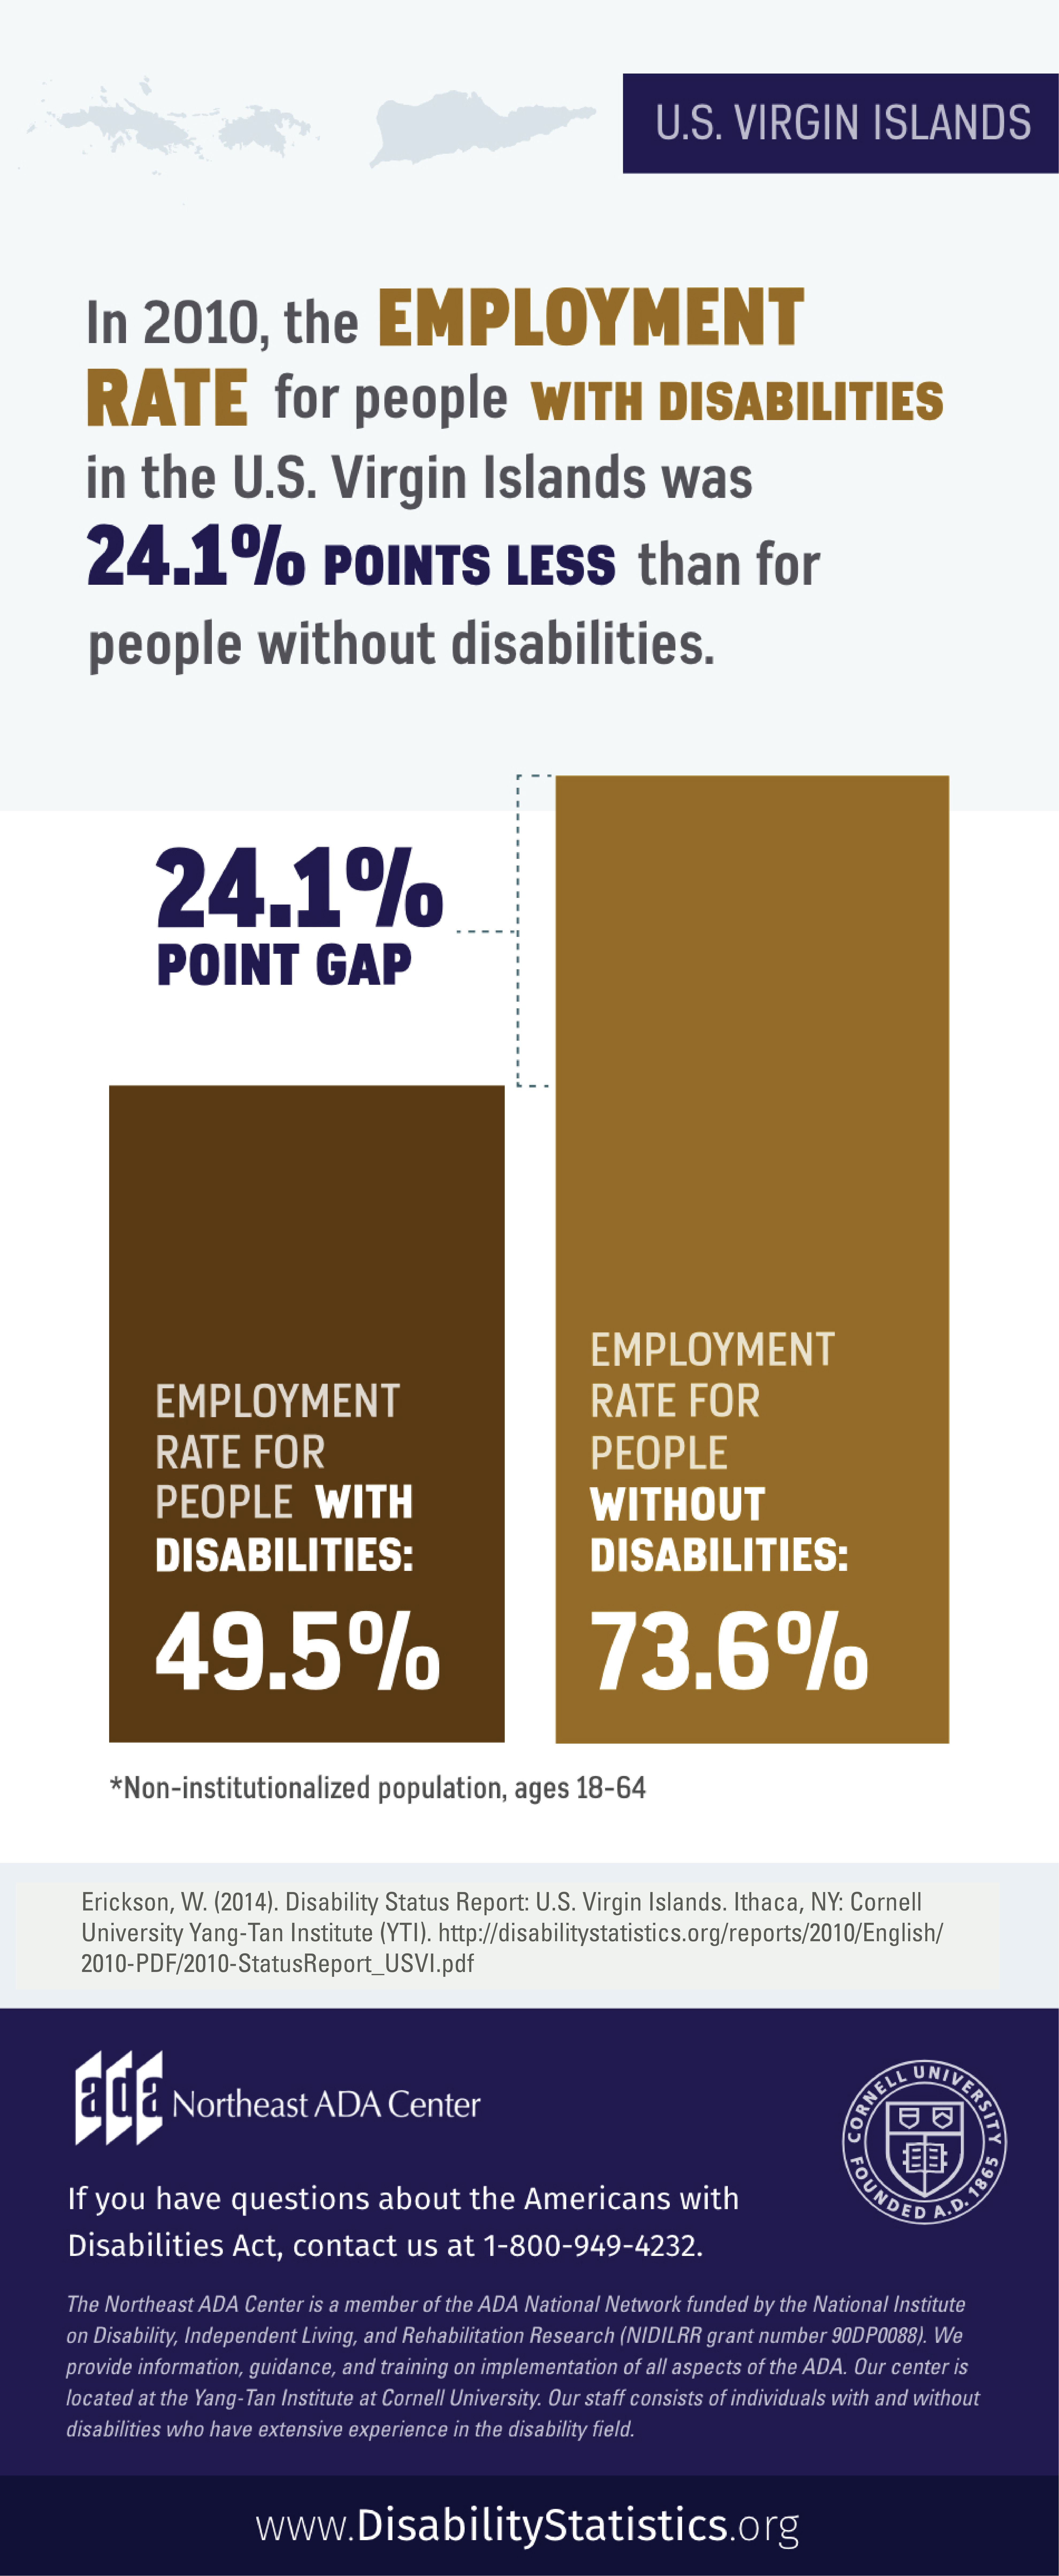 Infographic featuring text on top of an outline of the US Virgin Islands along with a bar graph showing employment rates for people with disabilities and people without disabilities in the Virgin Islands: In 2010, the Employment Rate for people with disabilities in the U.S. Virgin Islands was 24.1% points less than for people without disabilities. The Employment rate for people with disabilities was 49.5%. The Employment rate for people without disabilities was 73.6%. Statistics for non-institutionalized population, ages 18-64. Source: Erickson, W. (2014). Disability Status Report: U.S. Virgin Islands. Ithaca, NY: Cornell University Yang-Tan Institute (YTI). http://disabilitystatistics.org/reports/2010/English/2010-PDF/2010-StatusReport_USVI.pdf If you have questions about the Americans with Disabilities Act, contact the Northeast ADA Center at 1-800-949-4232.